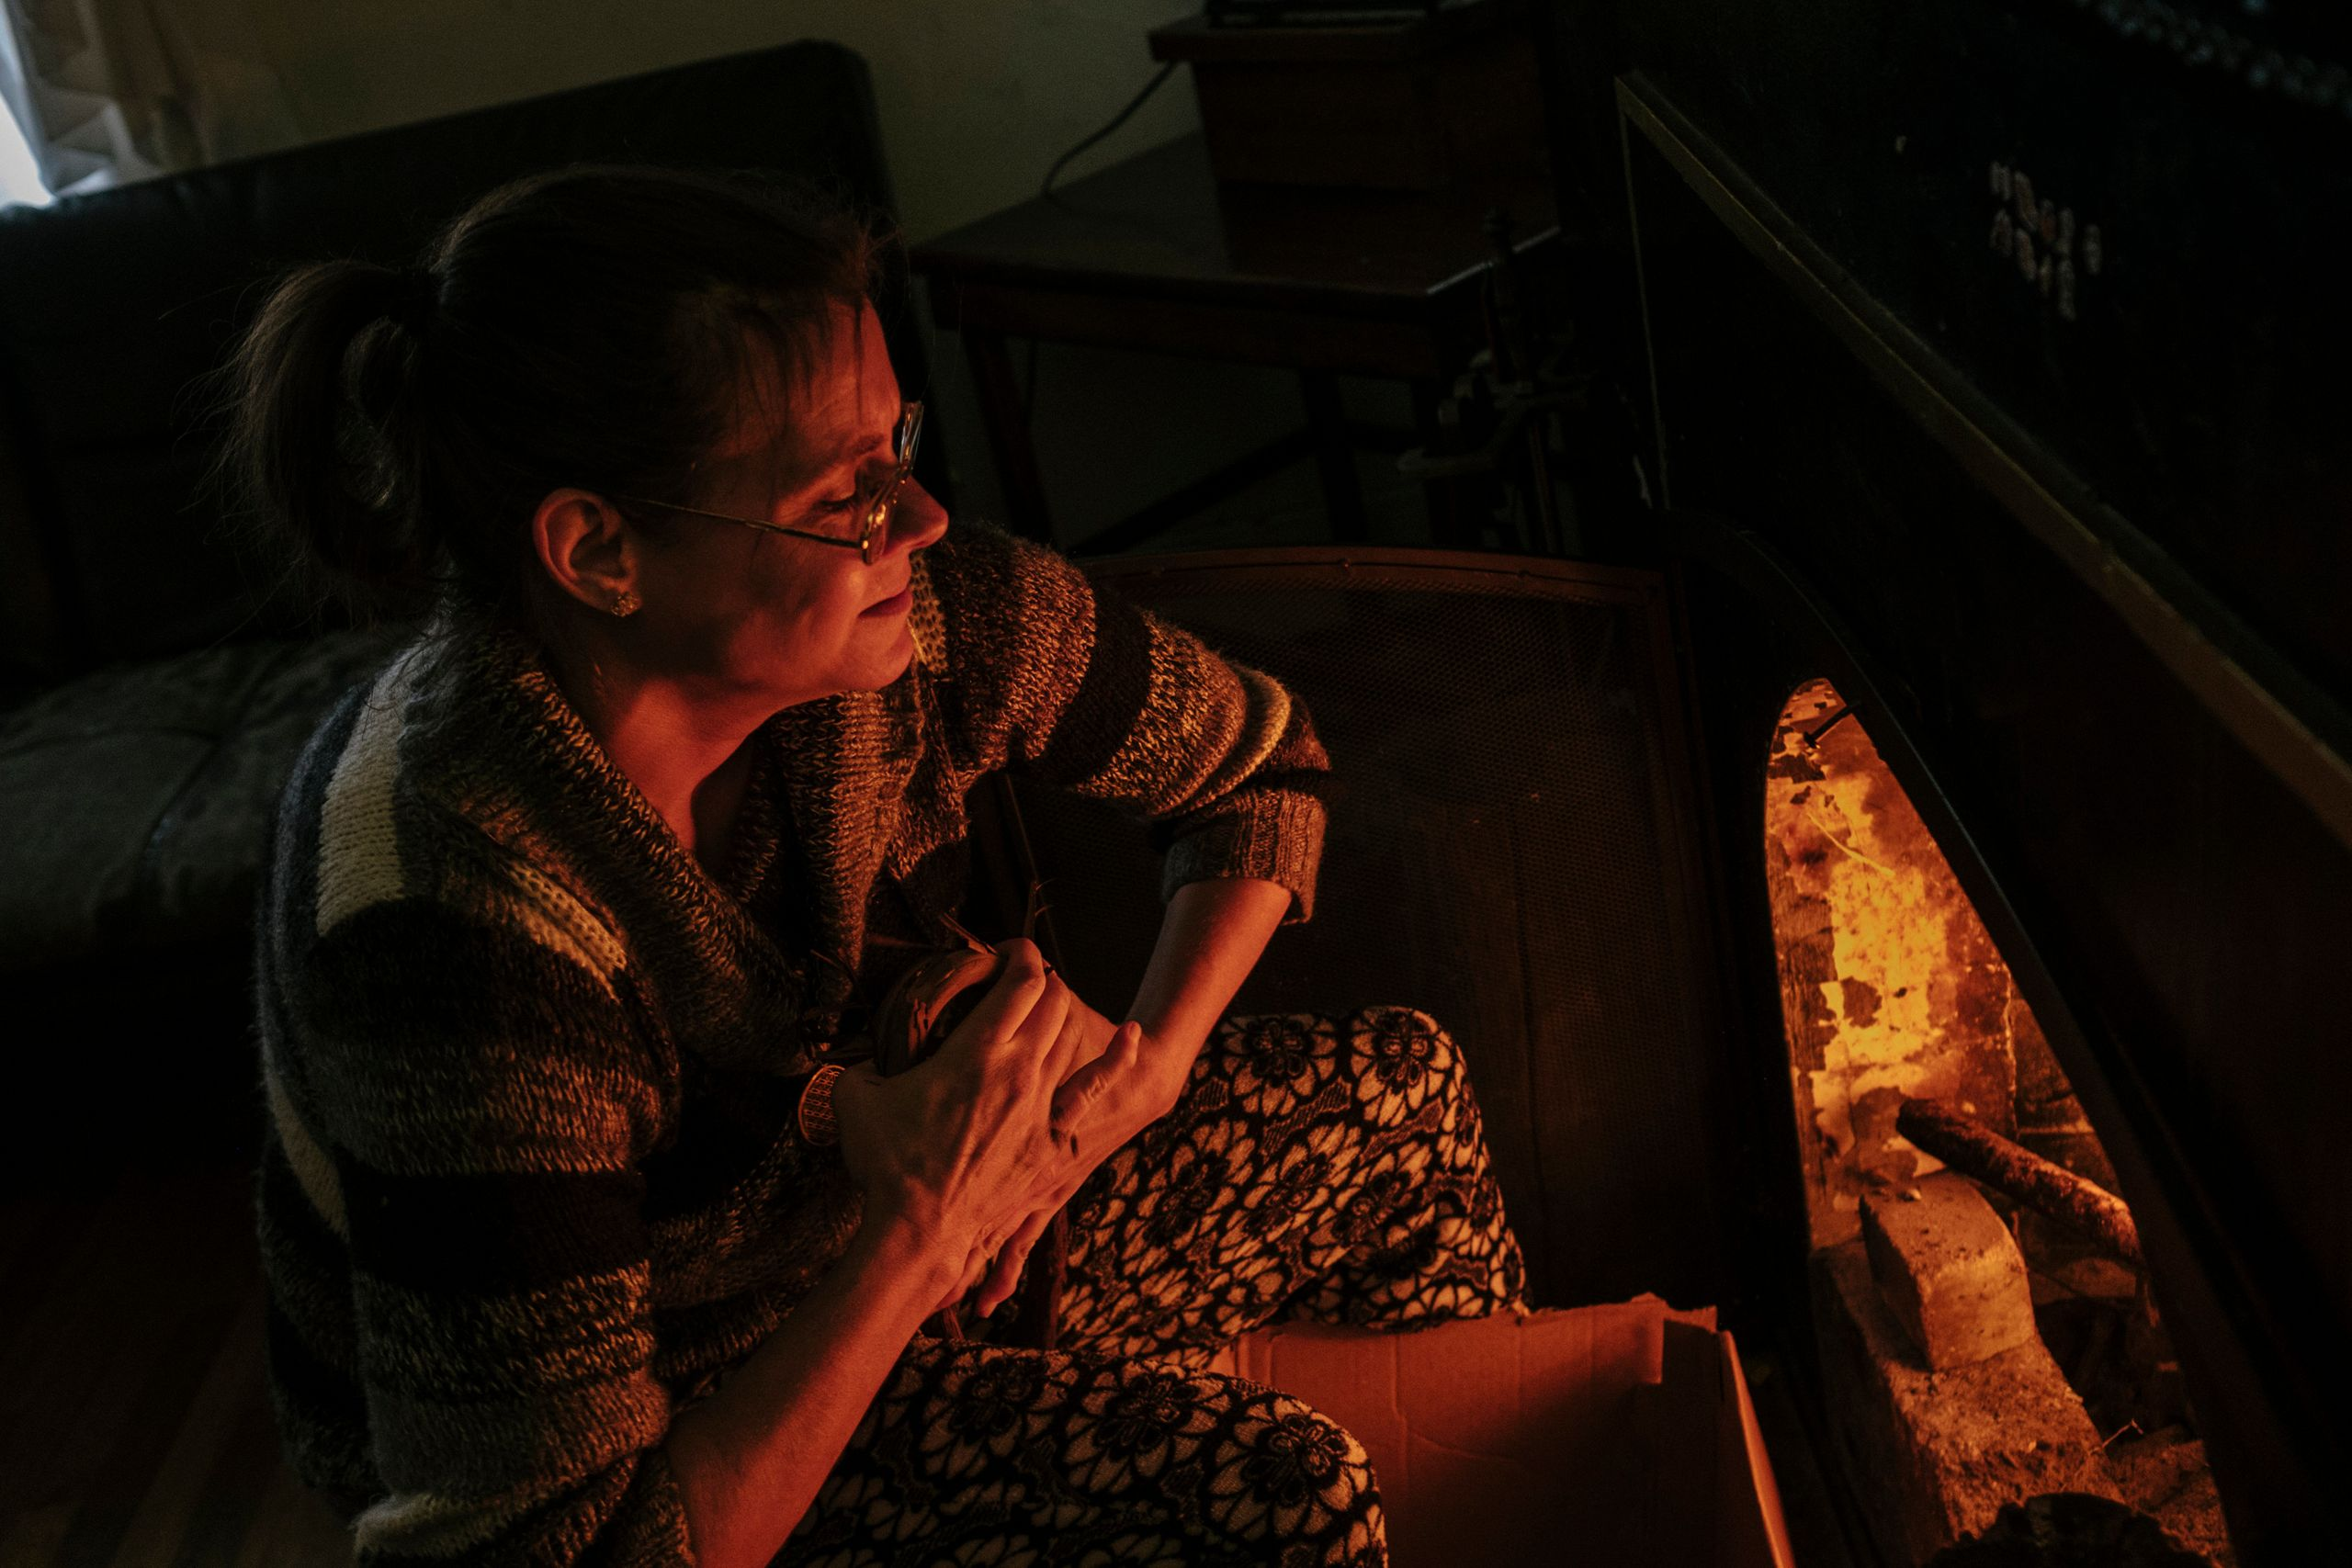 Fritz builds a fire using wood collected from the alley to heat her house.